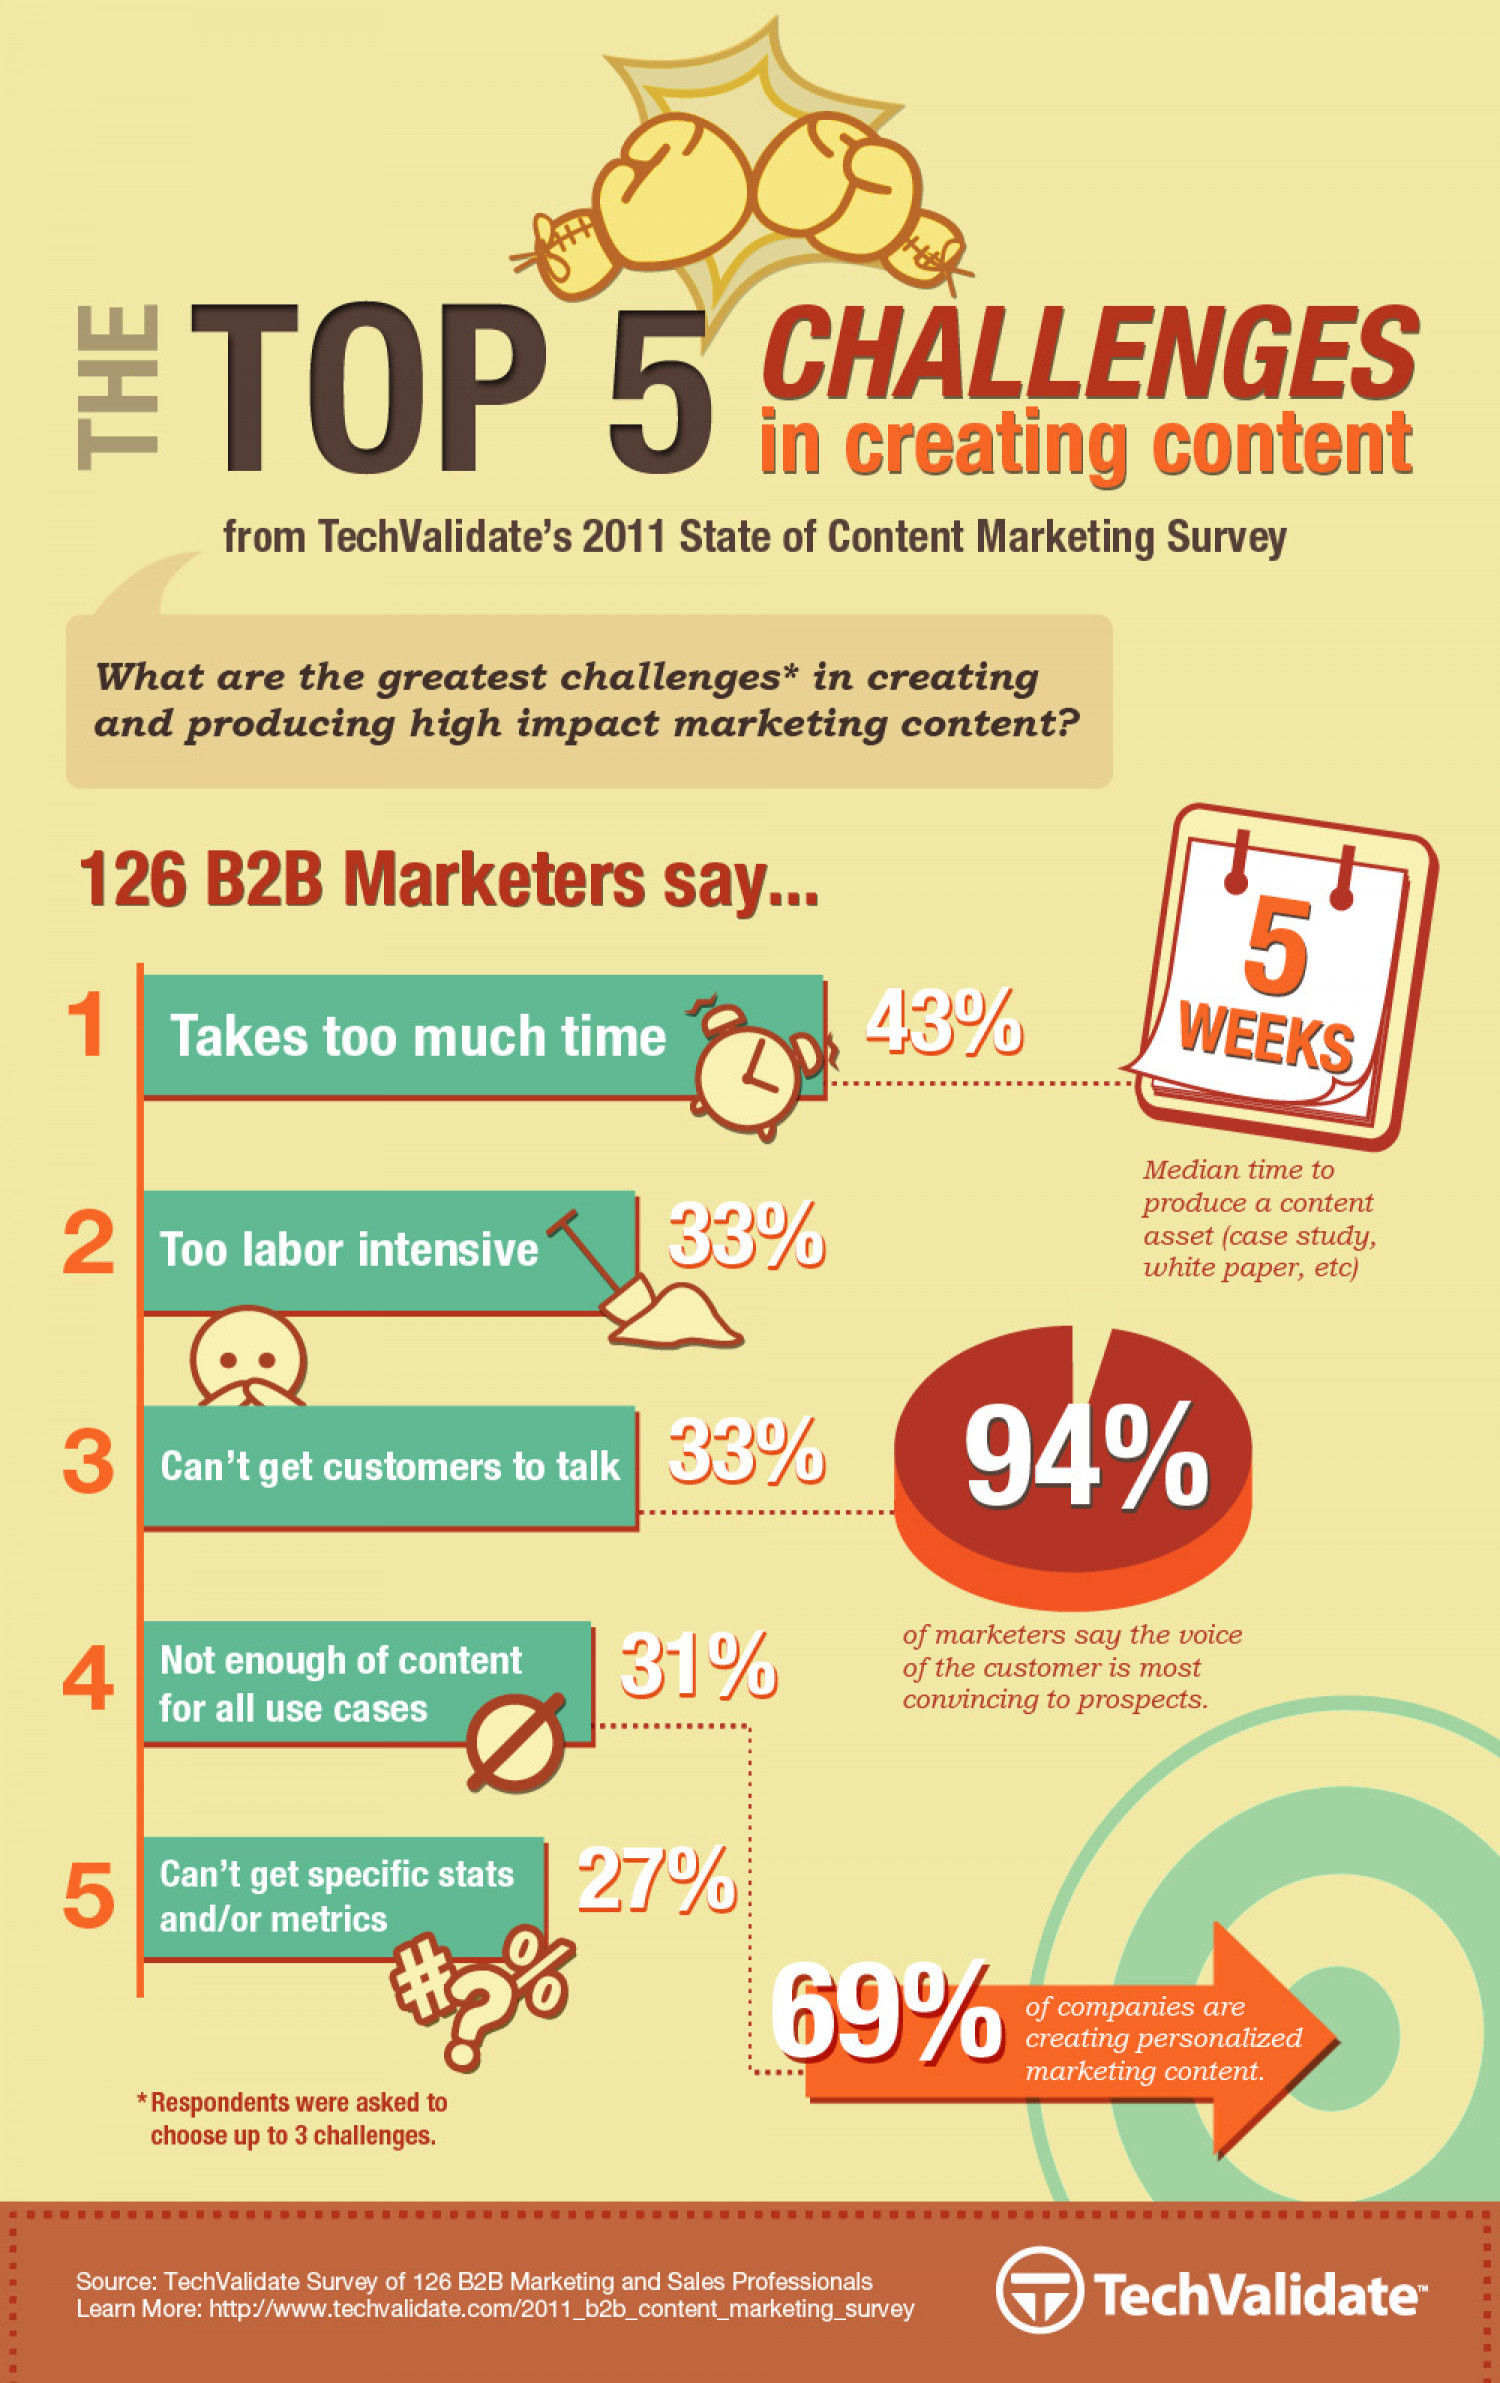 The Top 5 Challenges in Creating Content Infographic